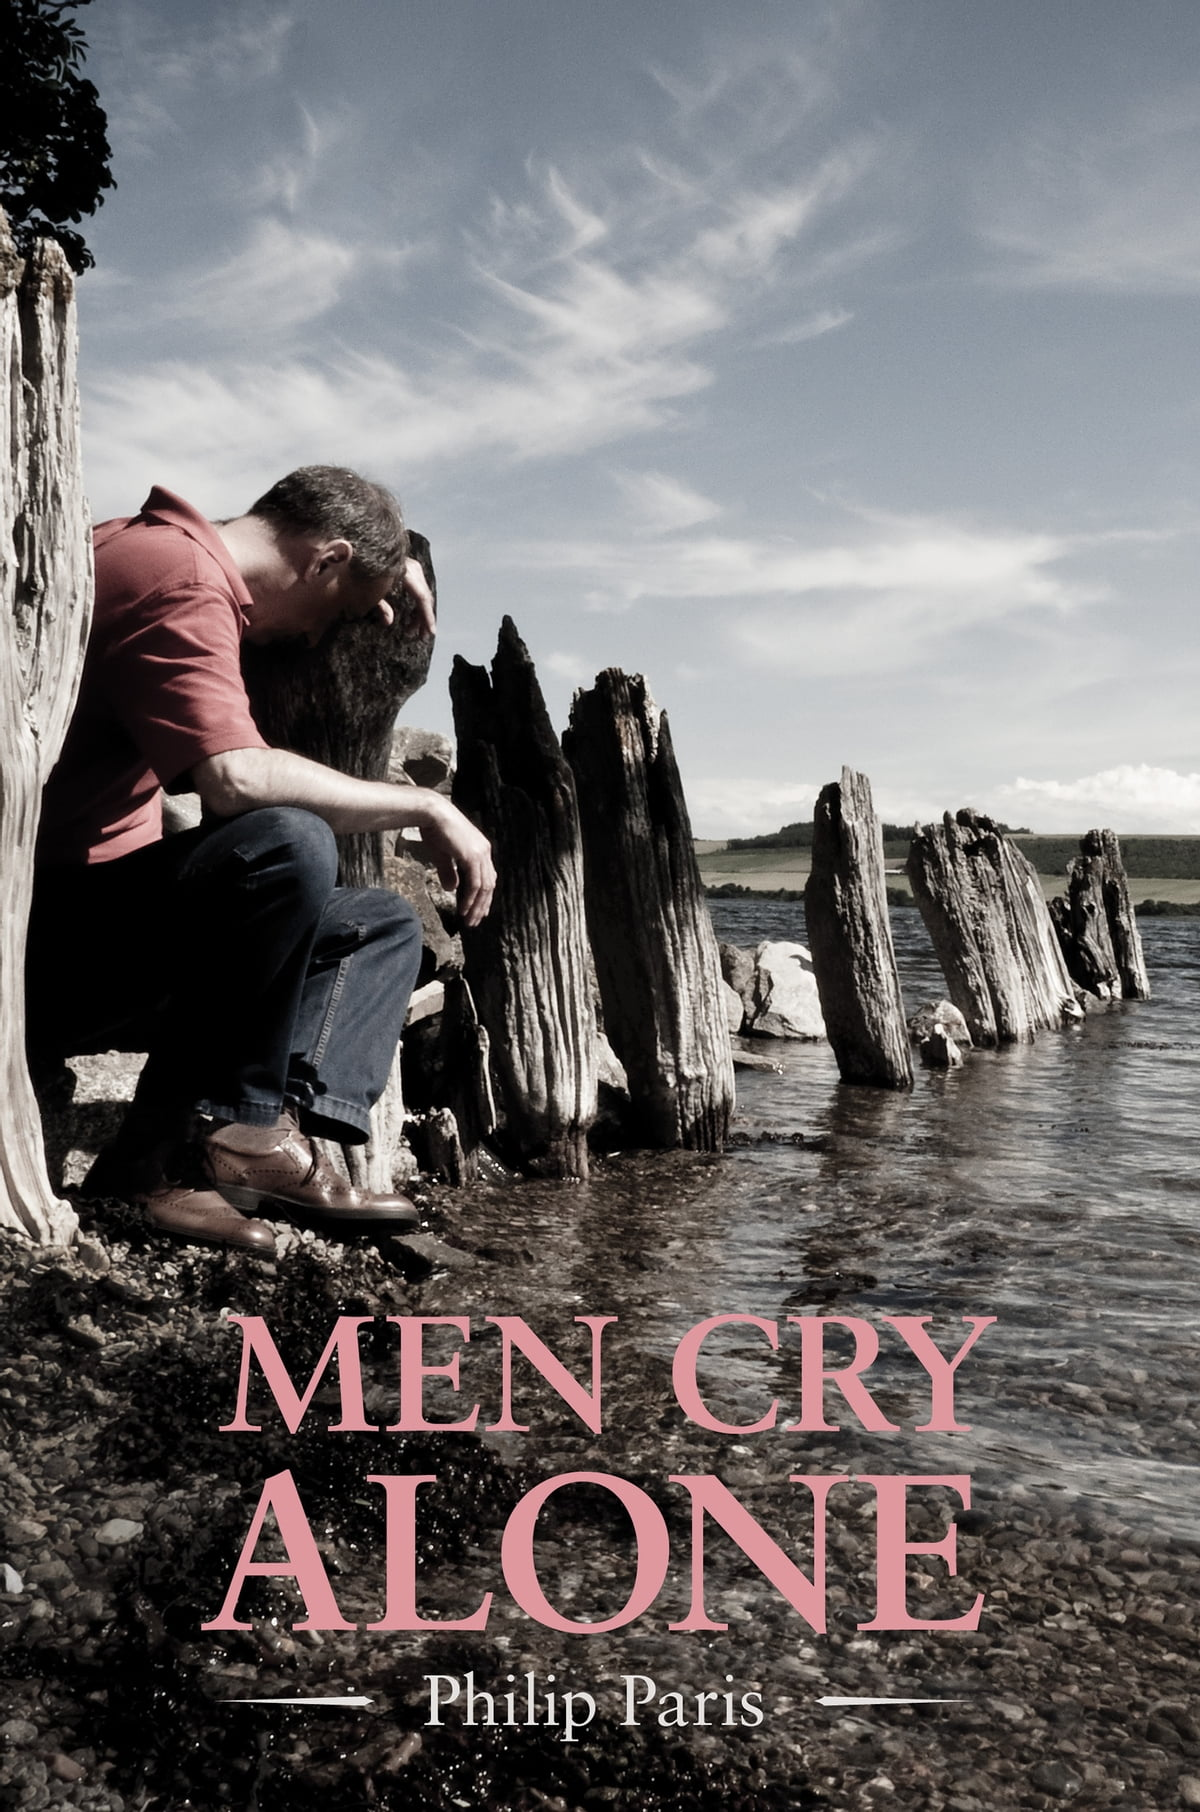 Men cry alone ebook by philip paris 9781301929986 rakuten kobo